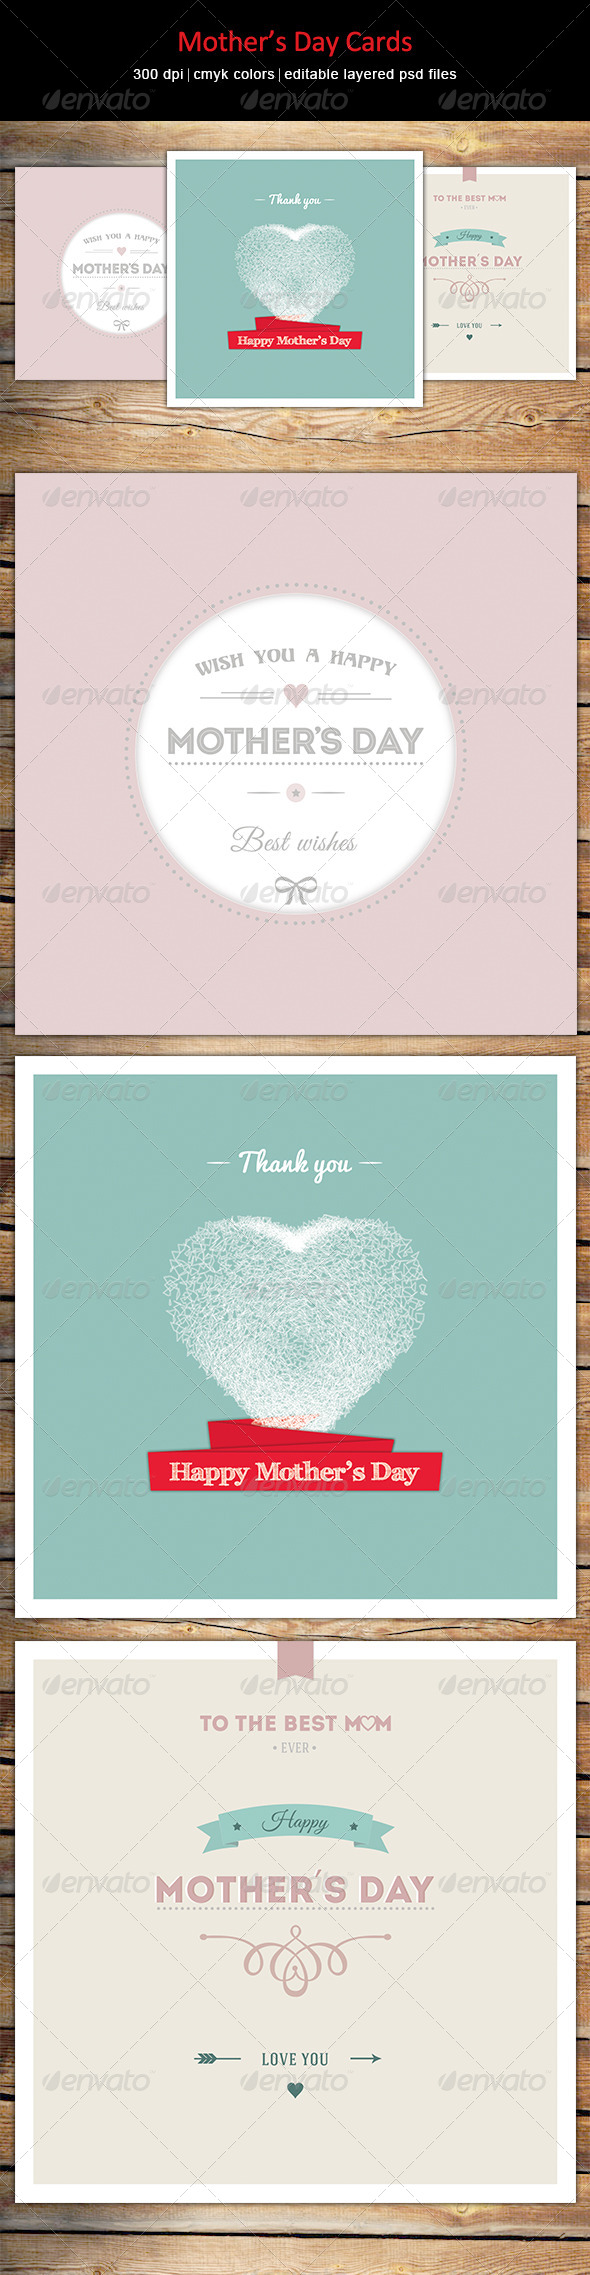 GraphicRiver Mother's Day Cards 7582676